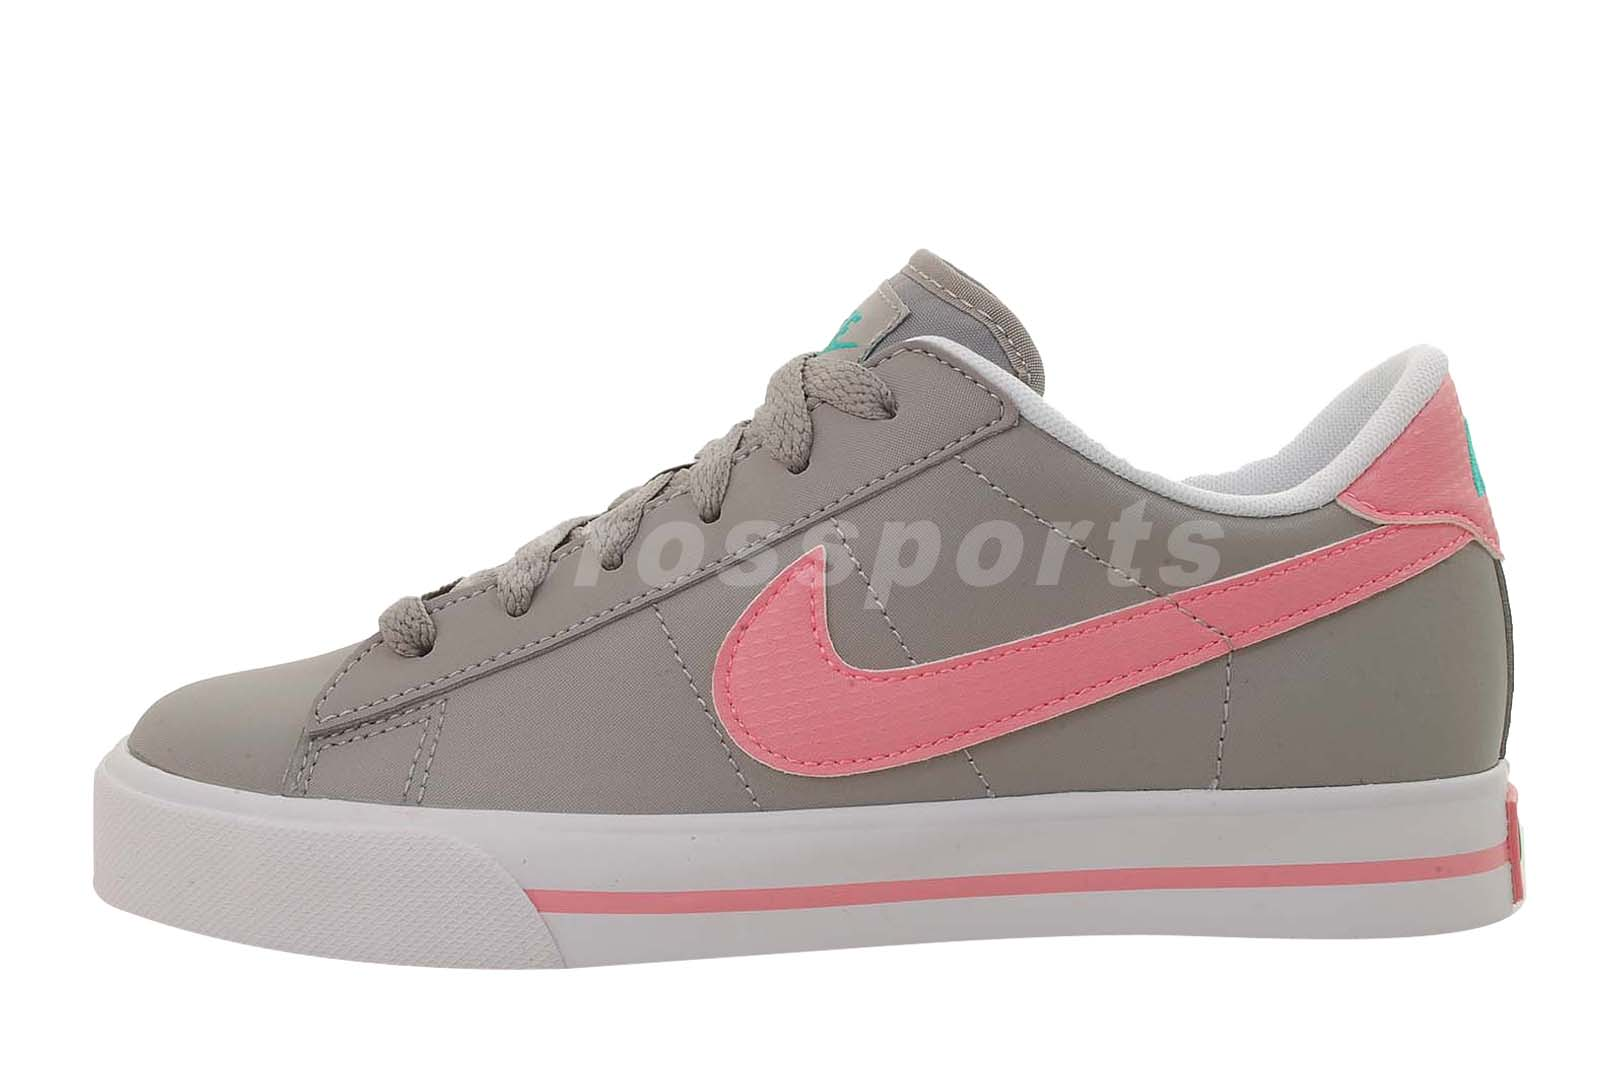 Popular Nike Shoes For Women Casual 2013 Thehoneycombimagingcouk